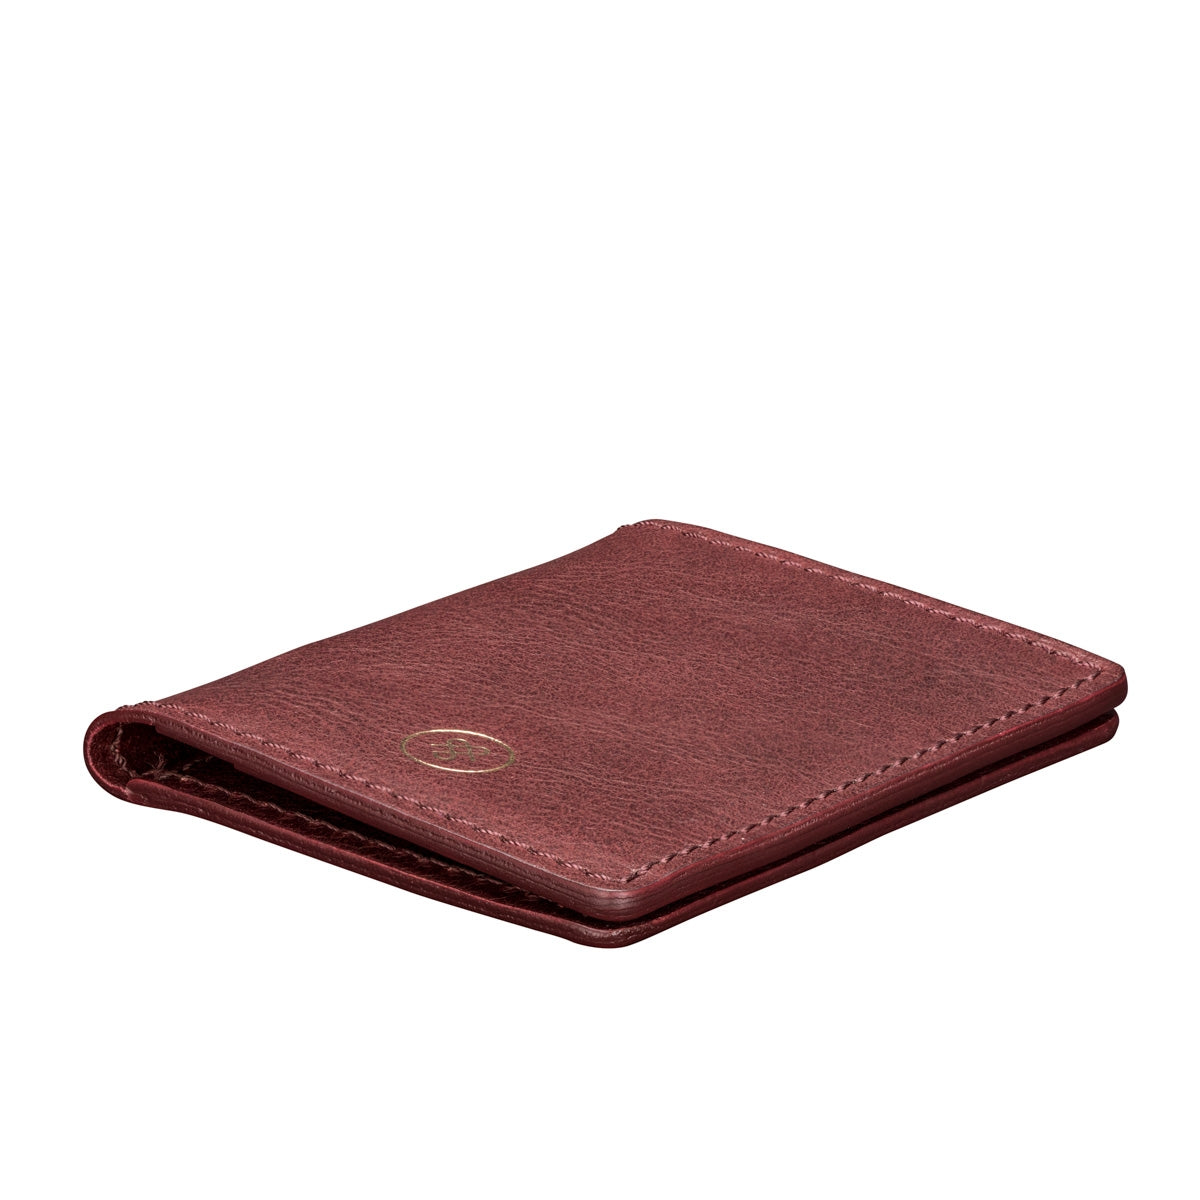 Image 5 of the 'Vallata' Wine Leather Oyster Card Holder